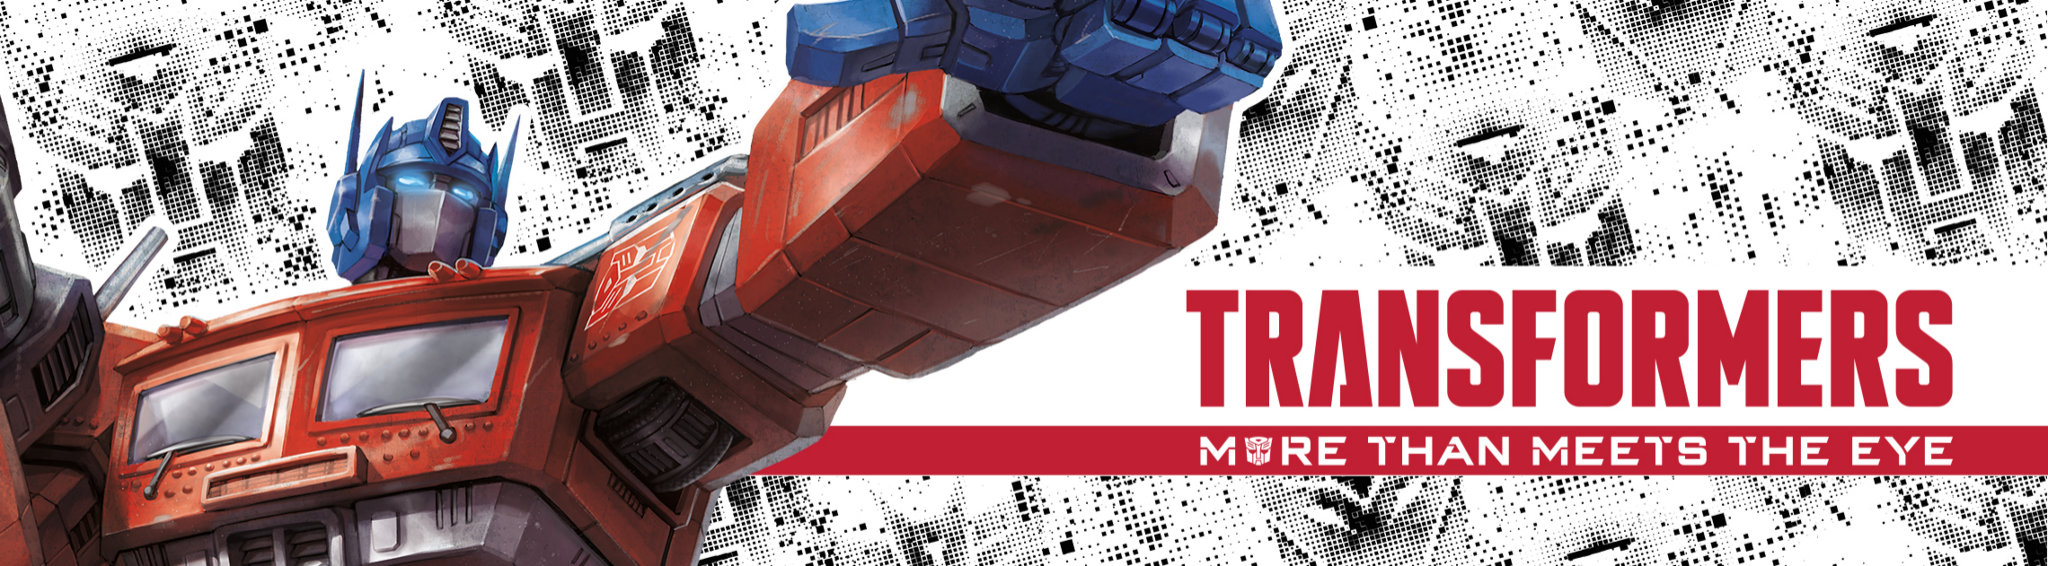 Transformers Banner showing a transformed truck